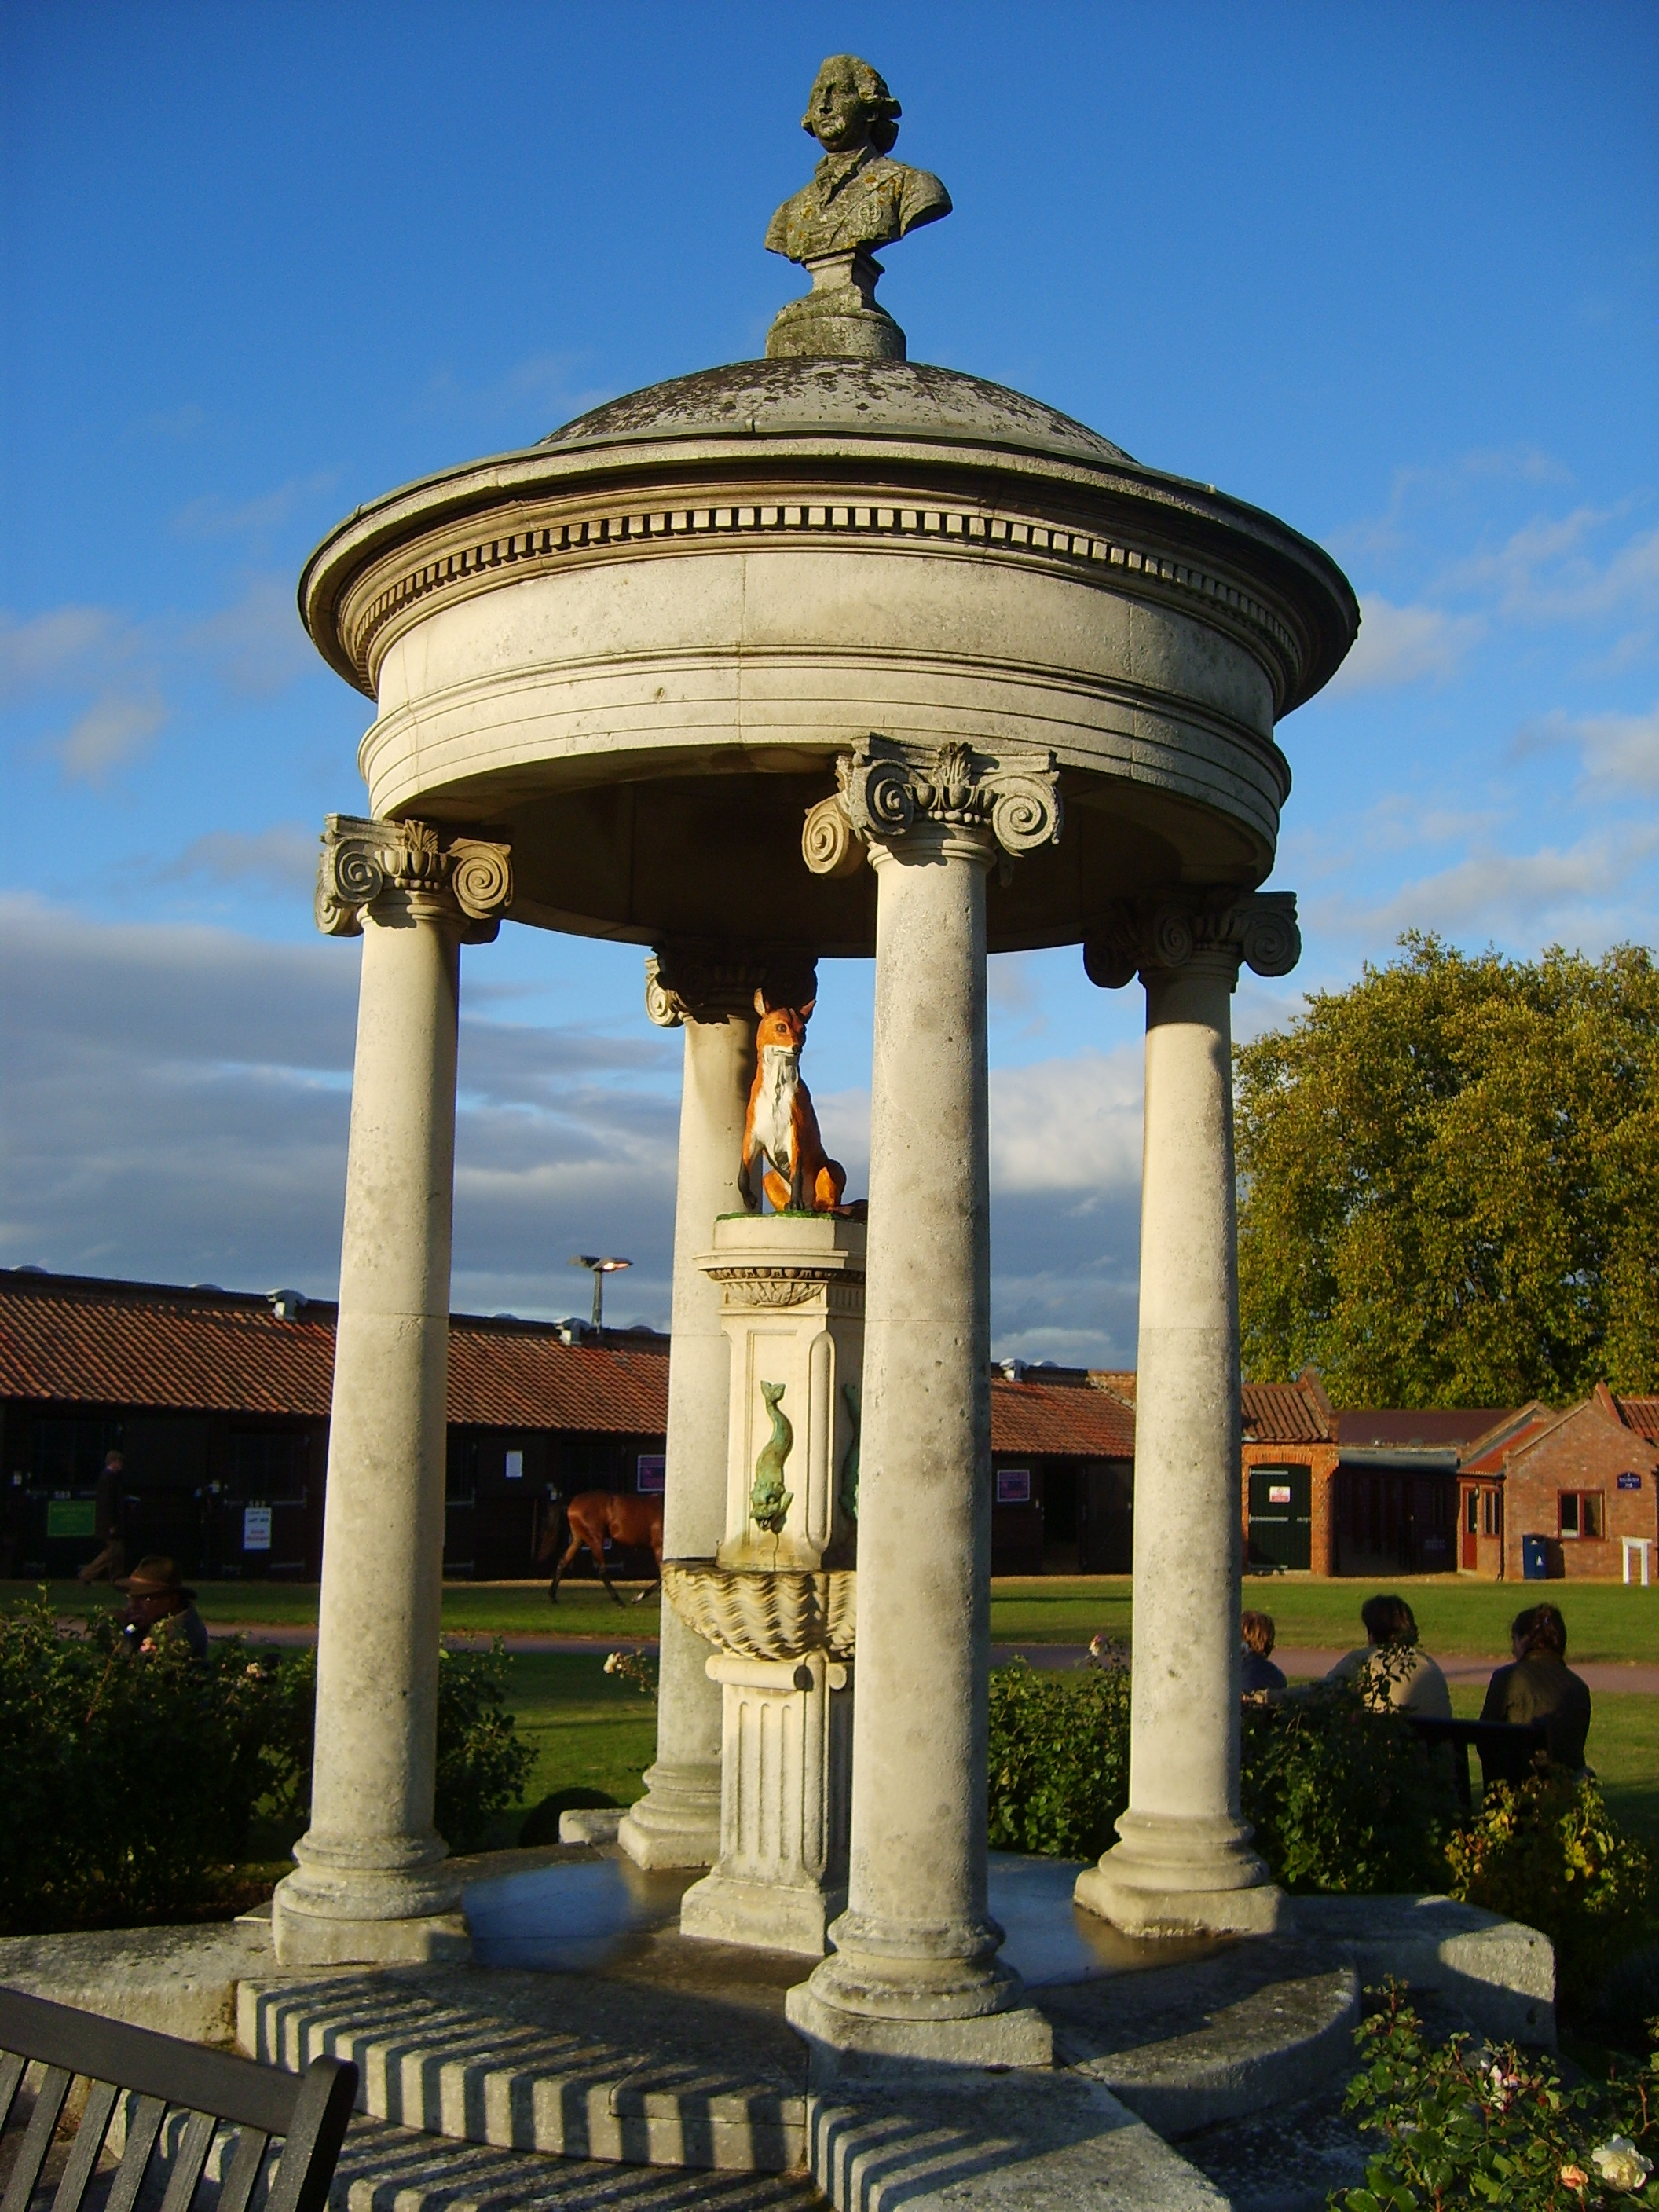 The Tattersalls auction house in England is the world's oldest Thoroughbred sales company and has a long association with foxhunting, as evidenced by the fox seen sitting in the iconic Tattersalls cupola. The structure, known simply as The Fox, is topped by a bust of King George IV. The Fox is a covered fountain that used to serve as a water trough at the company's original location on Hyde Park Corner in London.